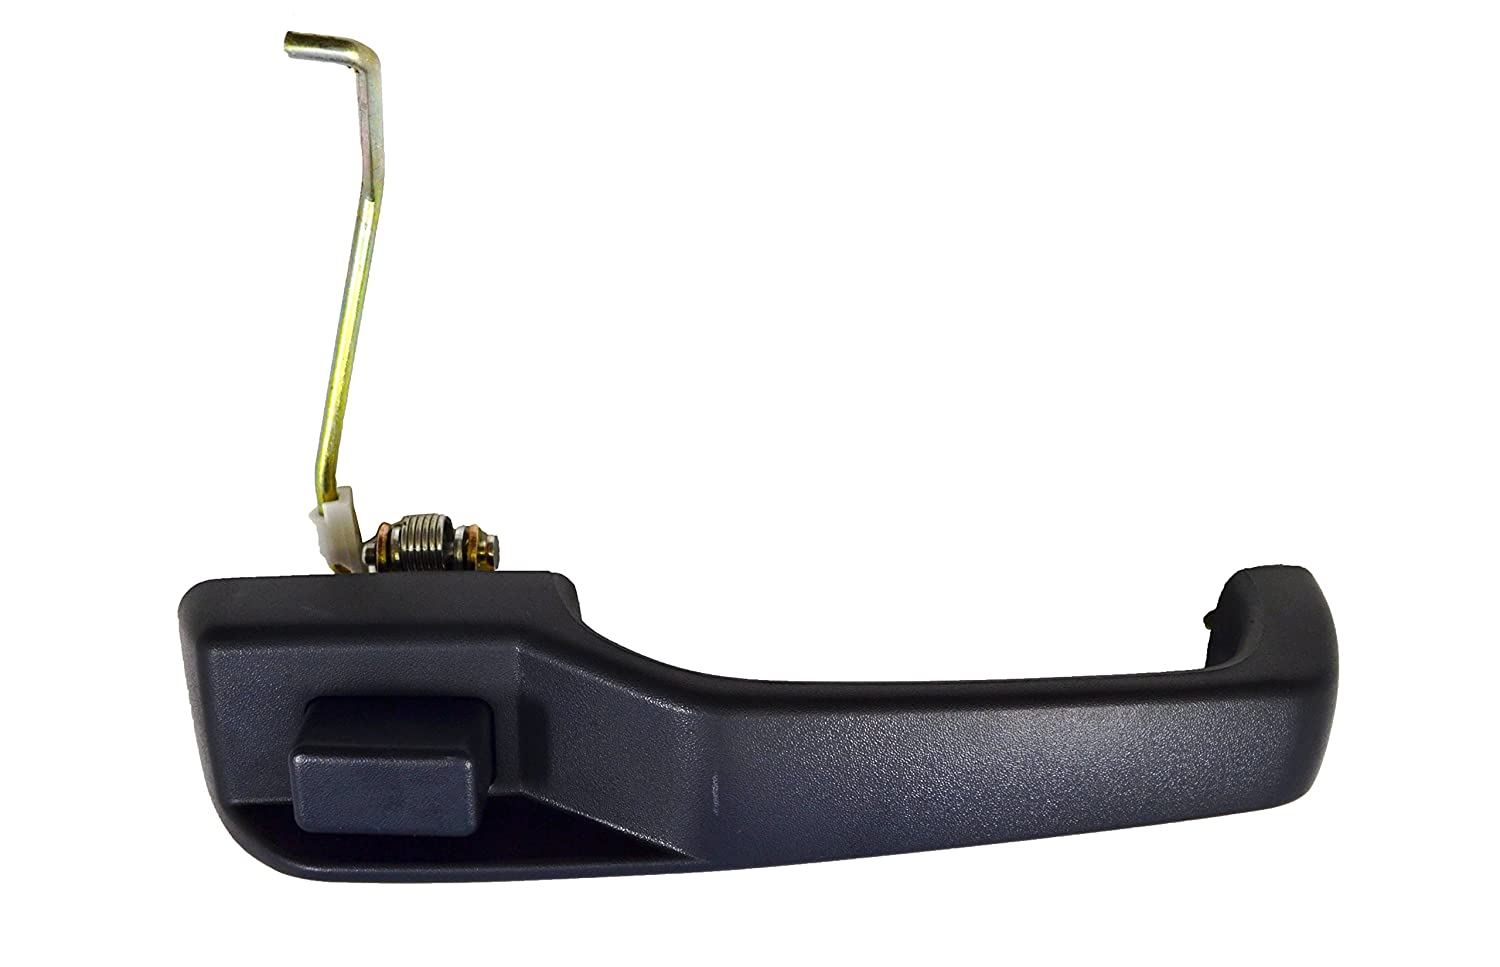 Passenger Side Front Outside Exterior Outer Door Handle Textured Black PT Auto Warehouse CH-3811A-FR